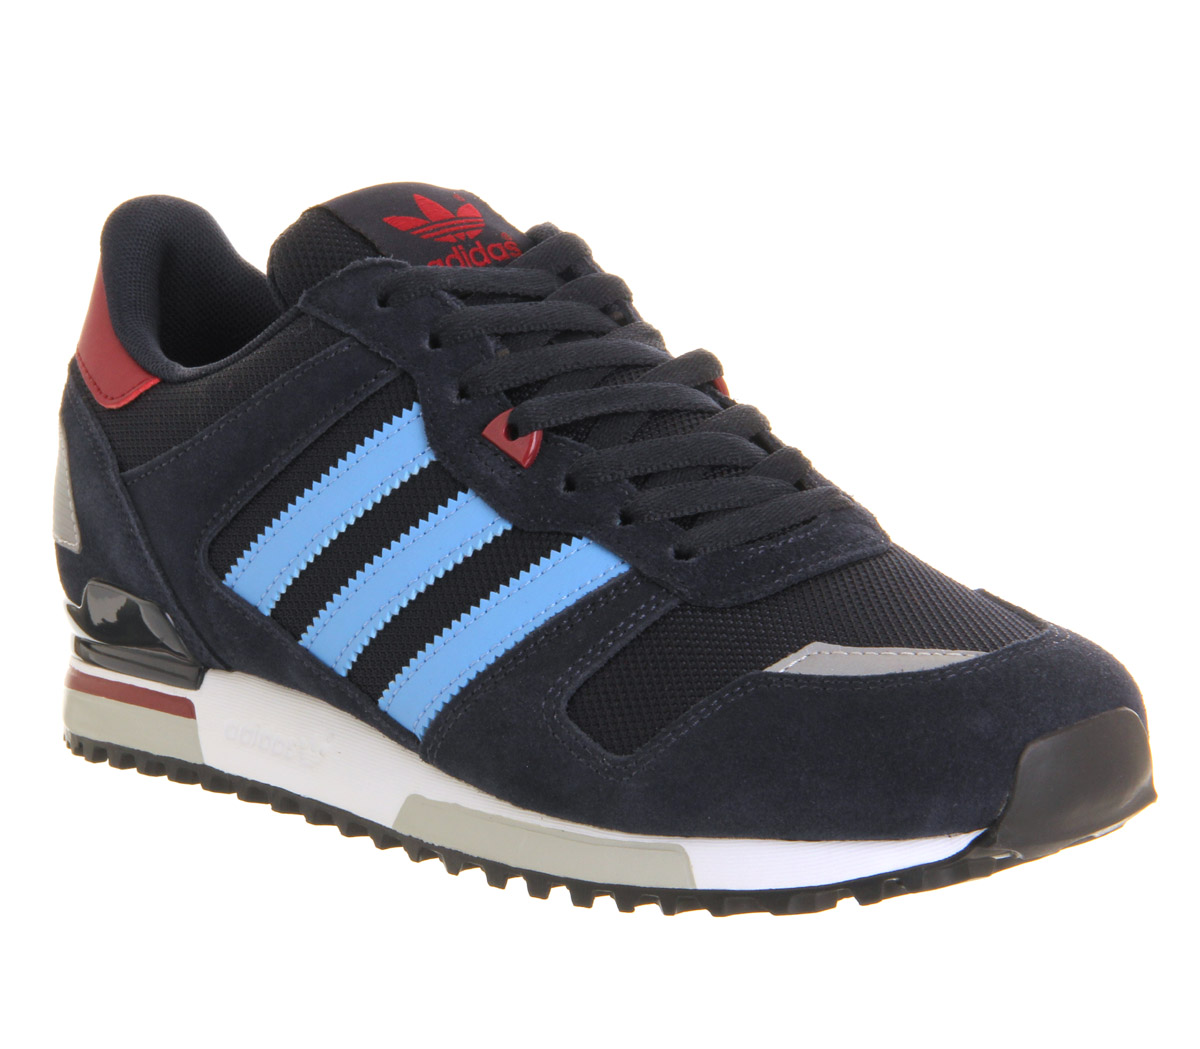 Adidas-Zx700-DARK-NAVY-COLUMBIA-BLUE-WHITE-EXCLUSIVE-Trainers-Shoes